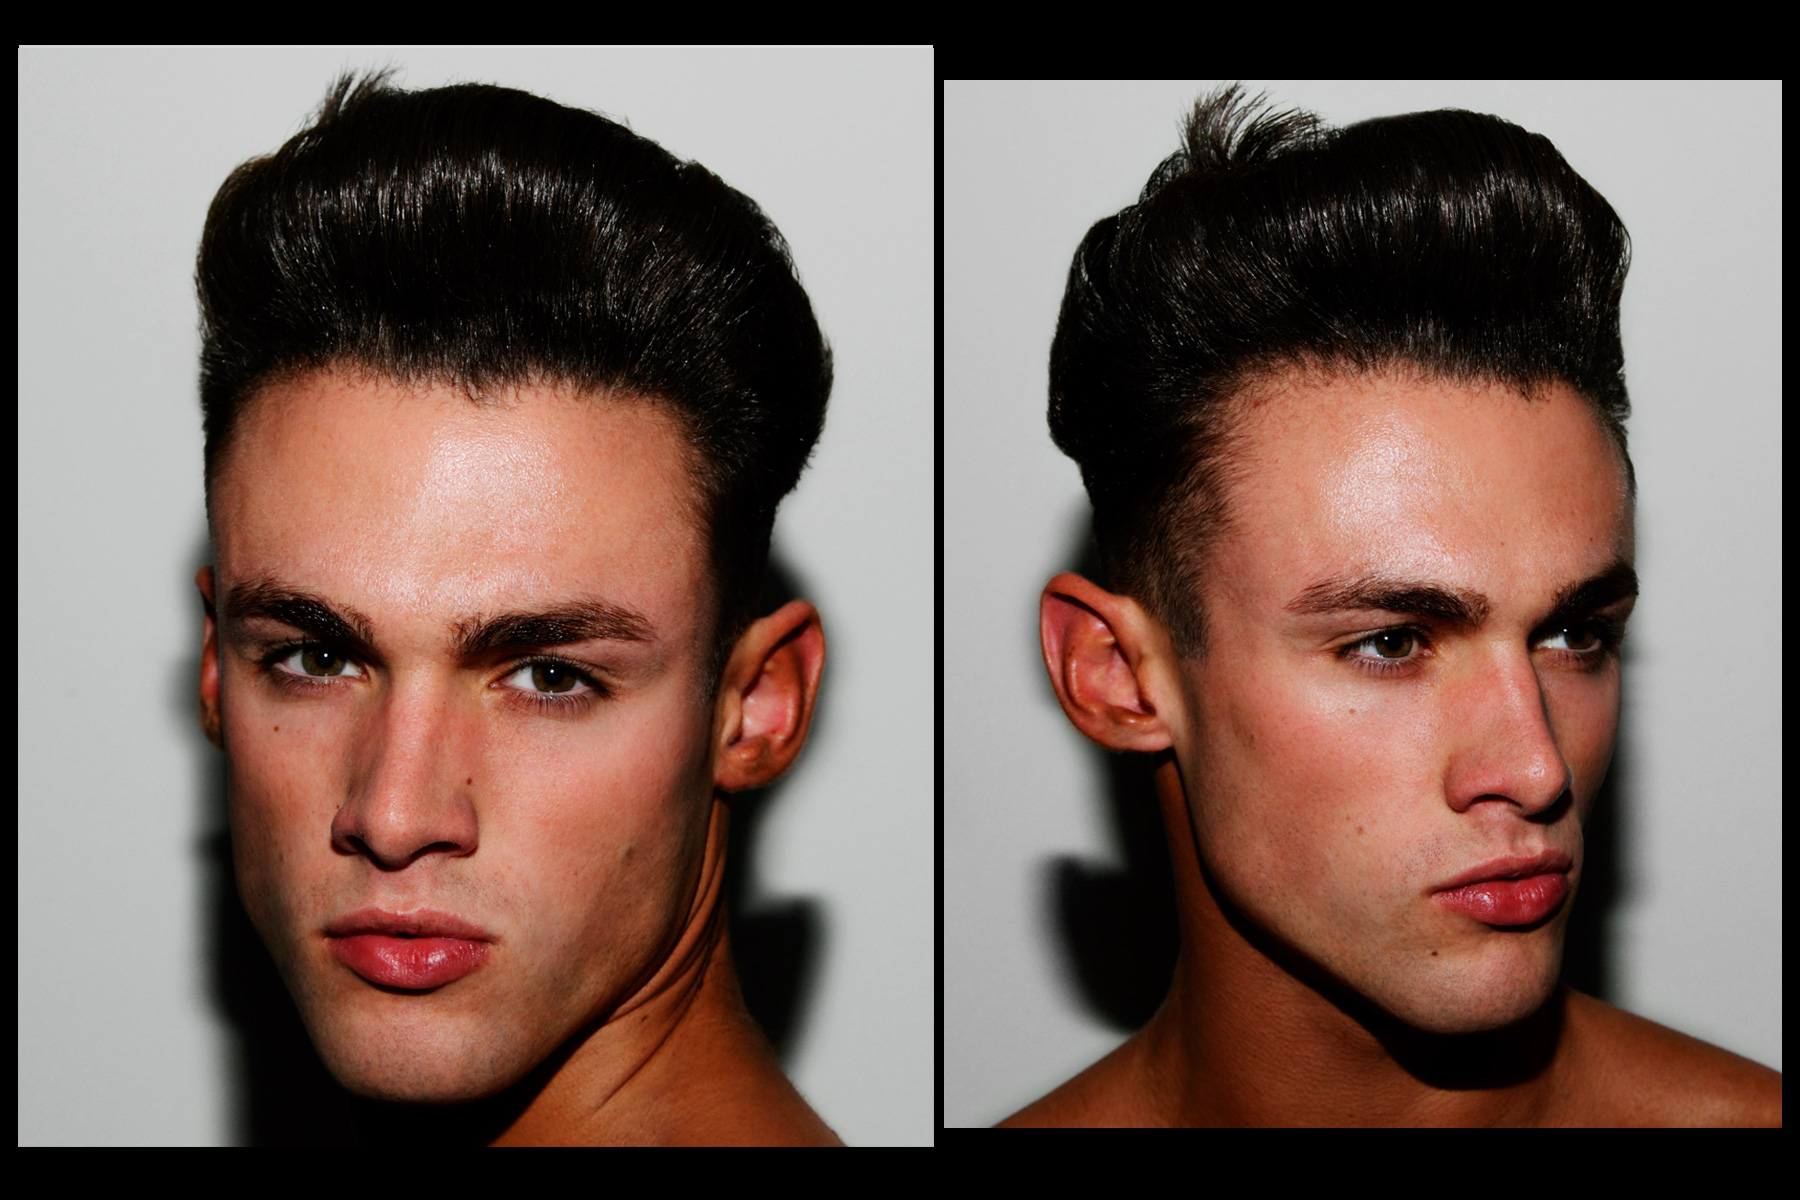 Pompadours backtage at Martin Keehn